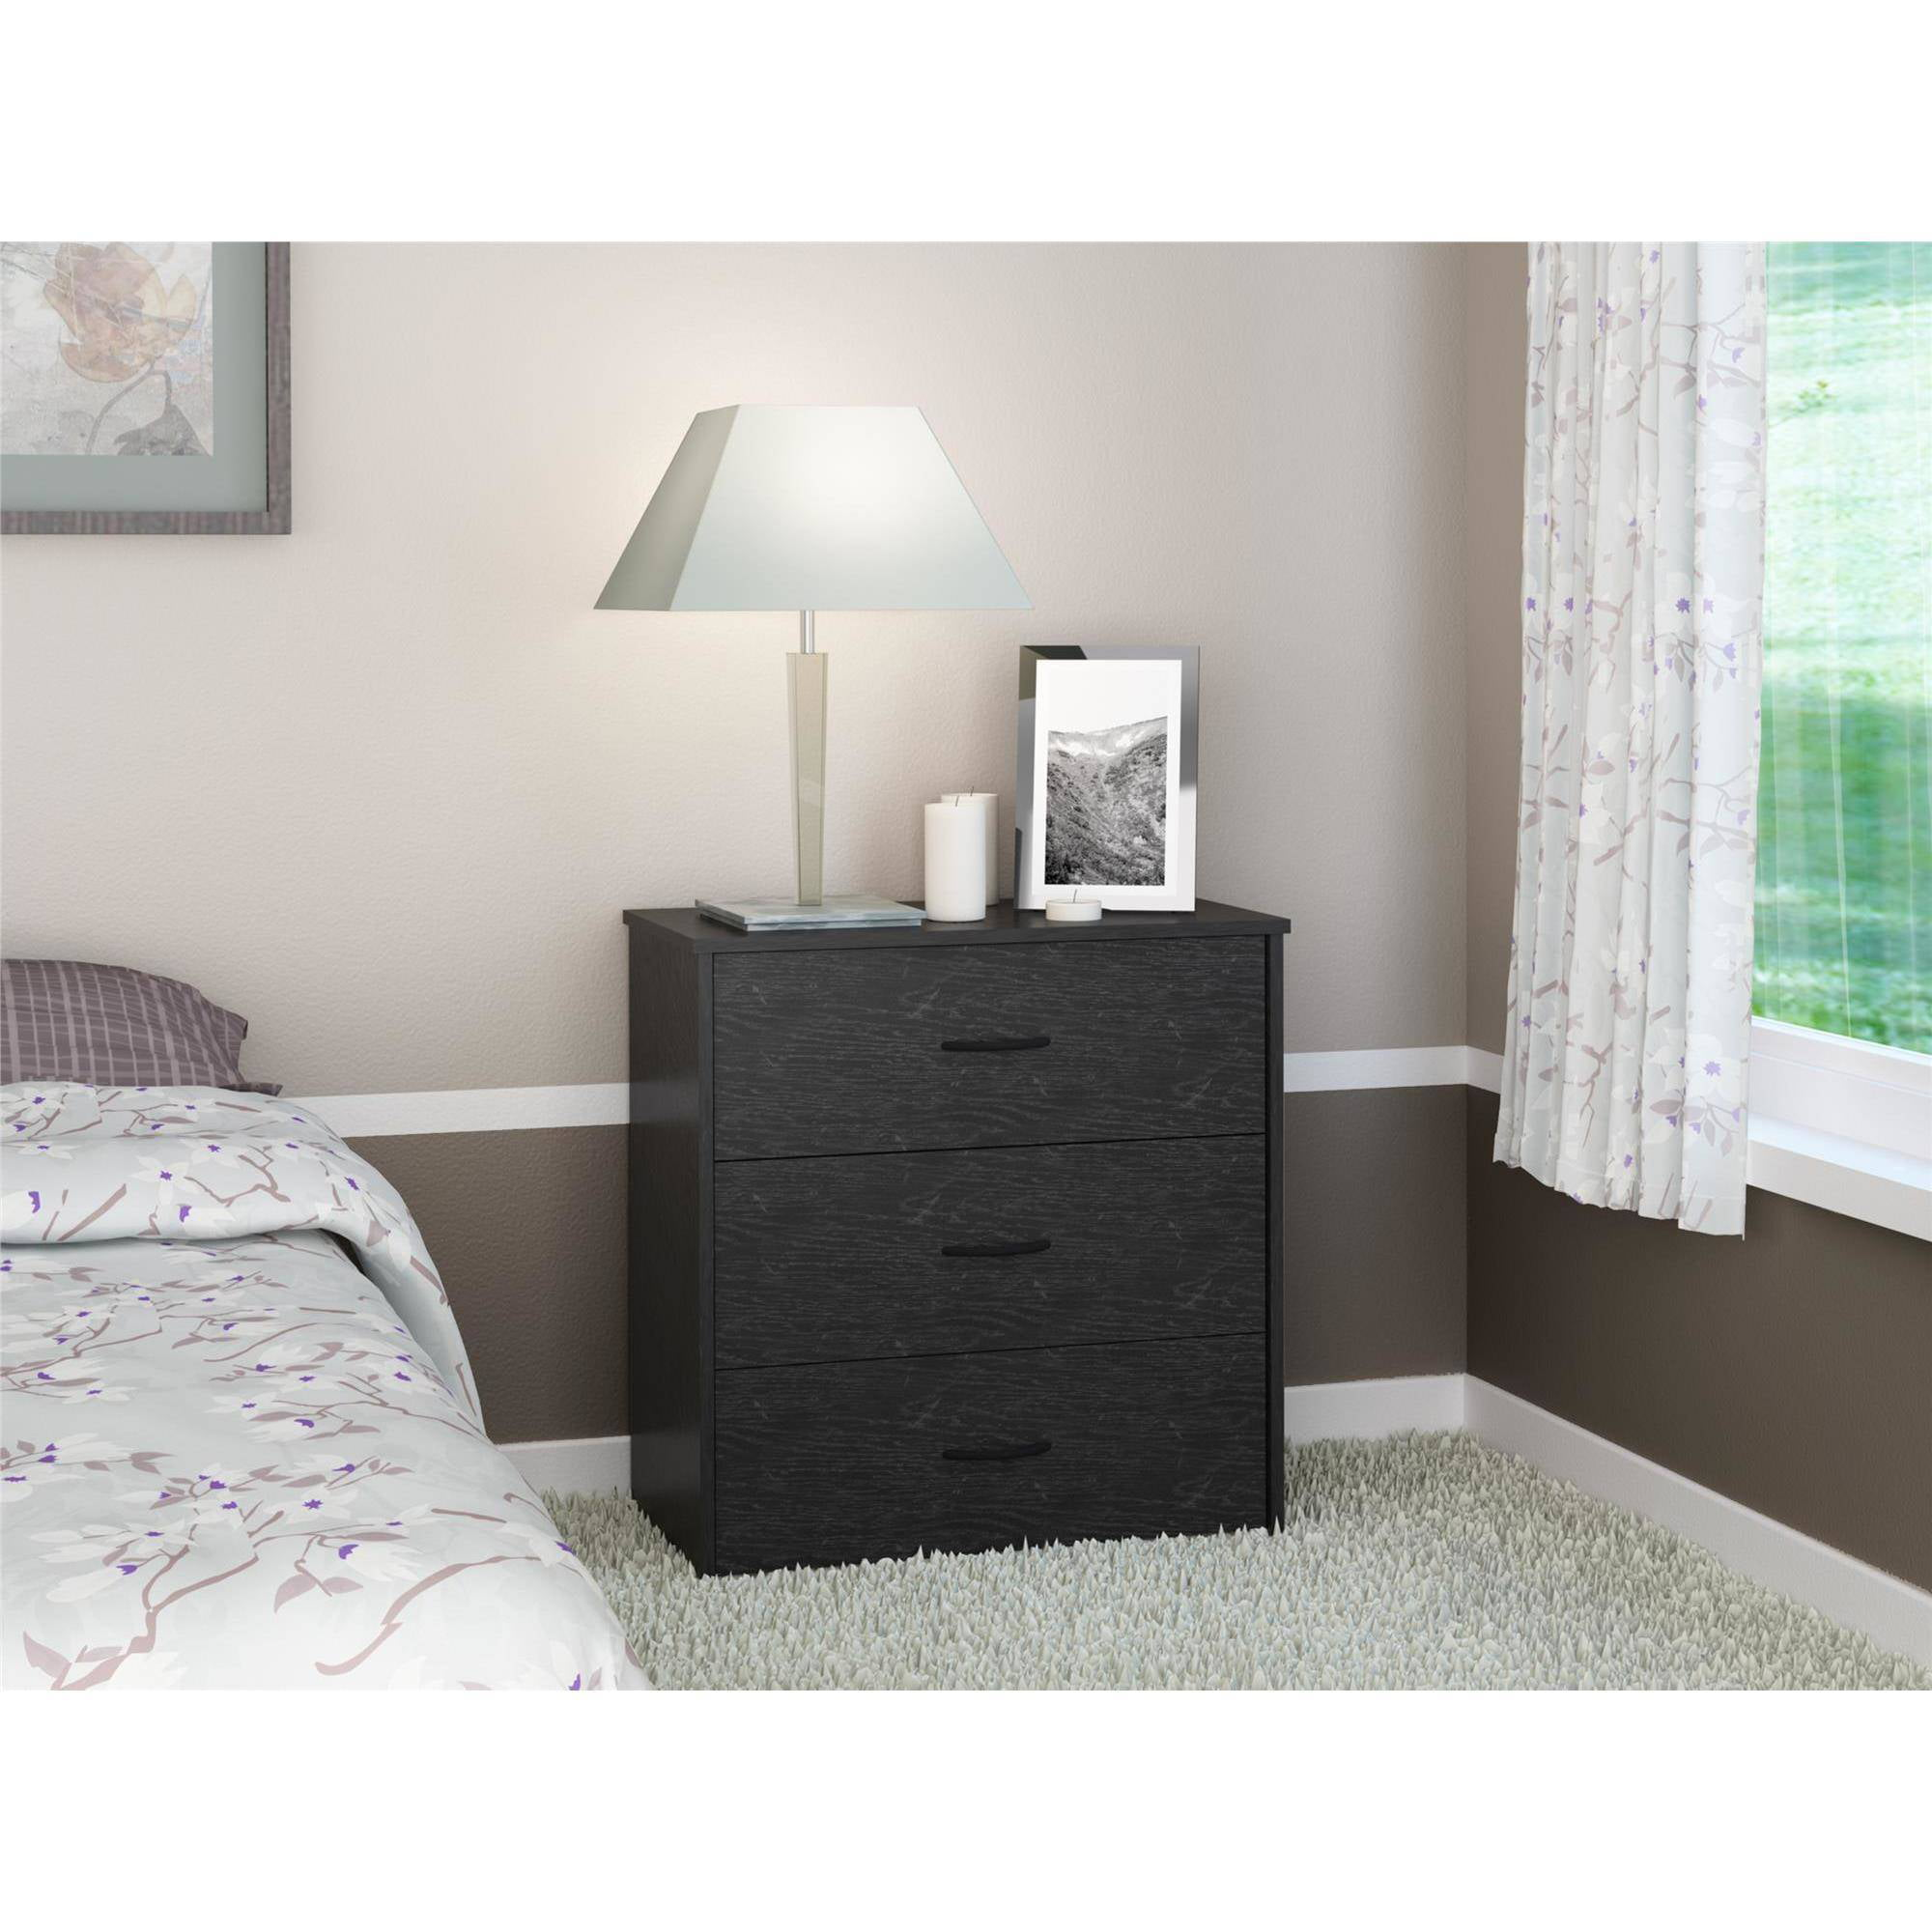 3 Drawer Dresser Chest Bedroom Furniture Black Brown